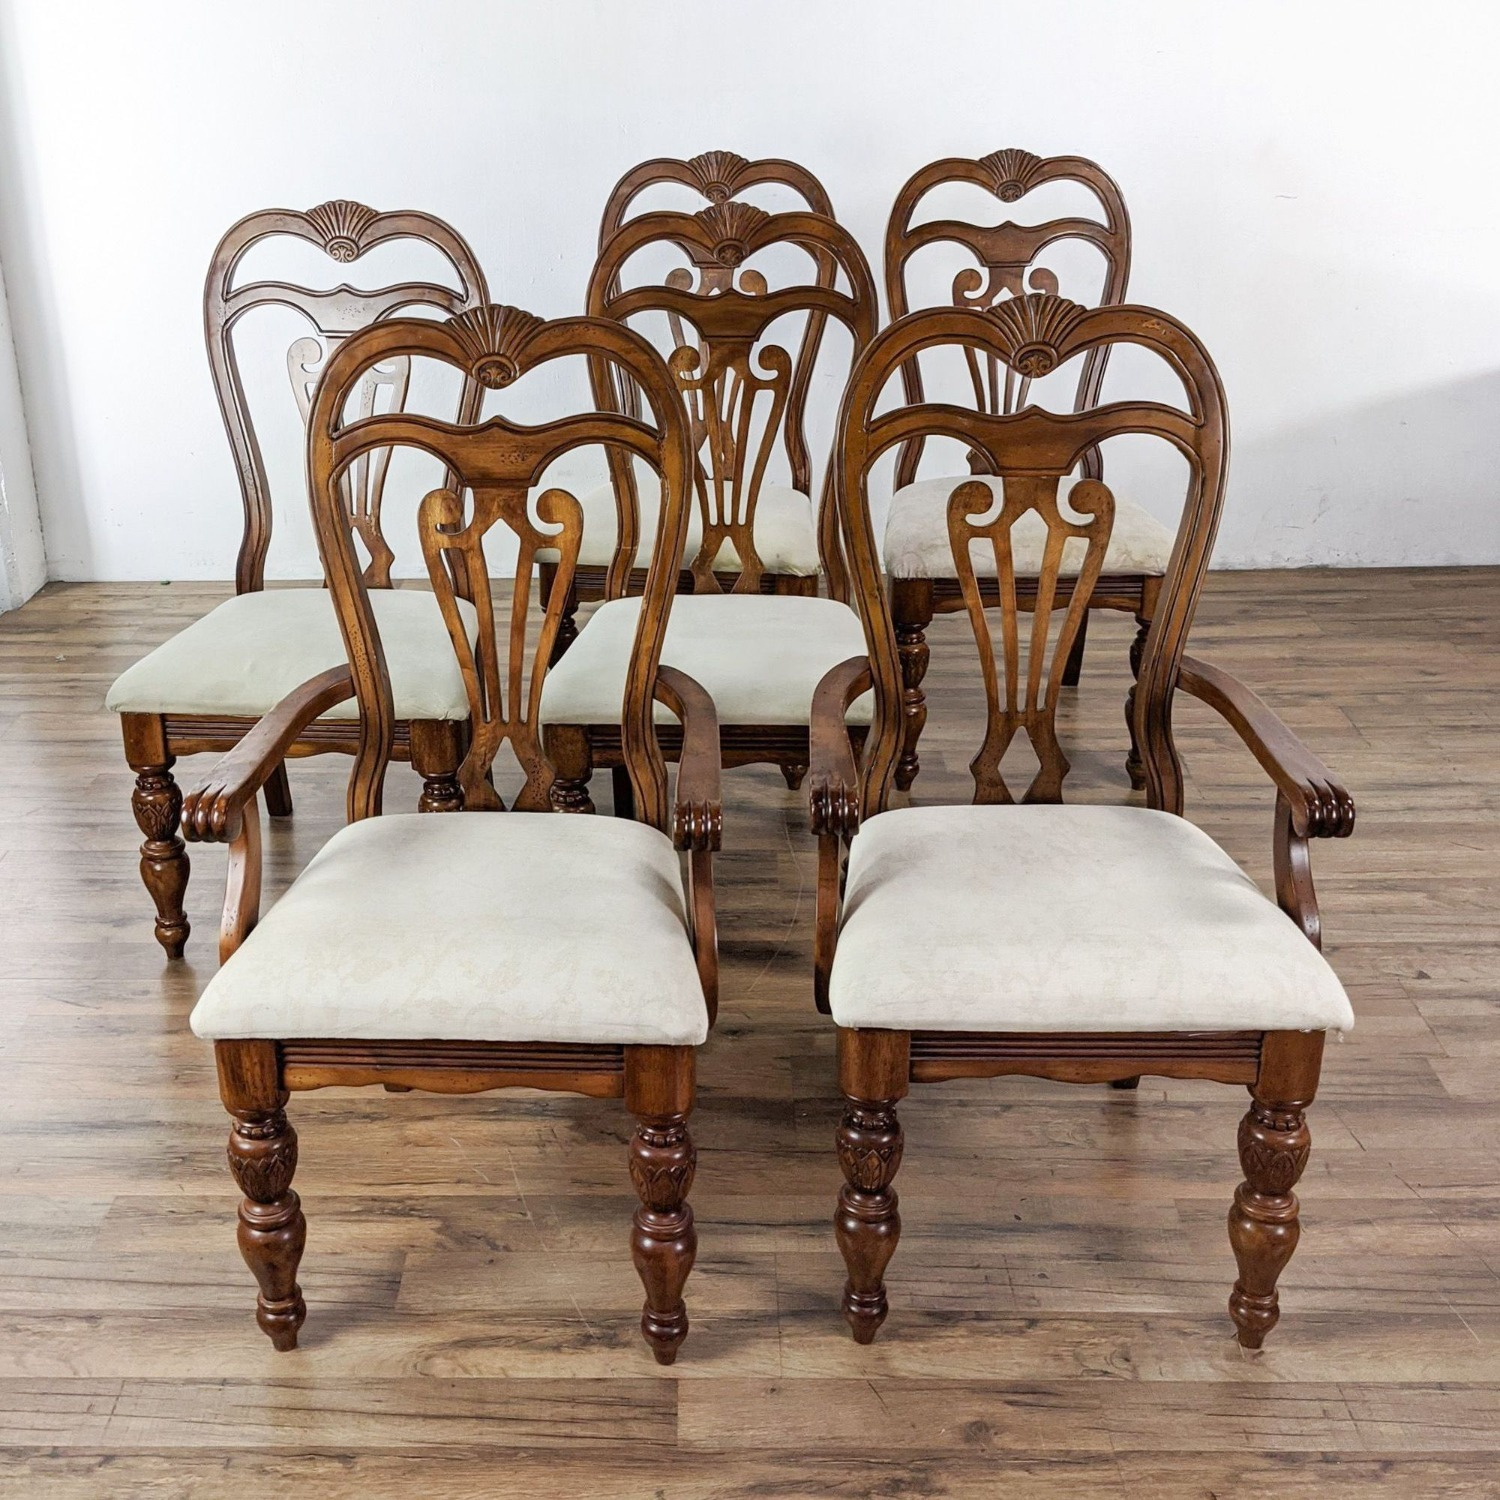 Set of 6 Wooden Dining Chairs - image-2